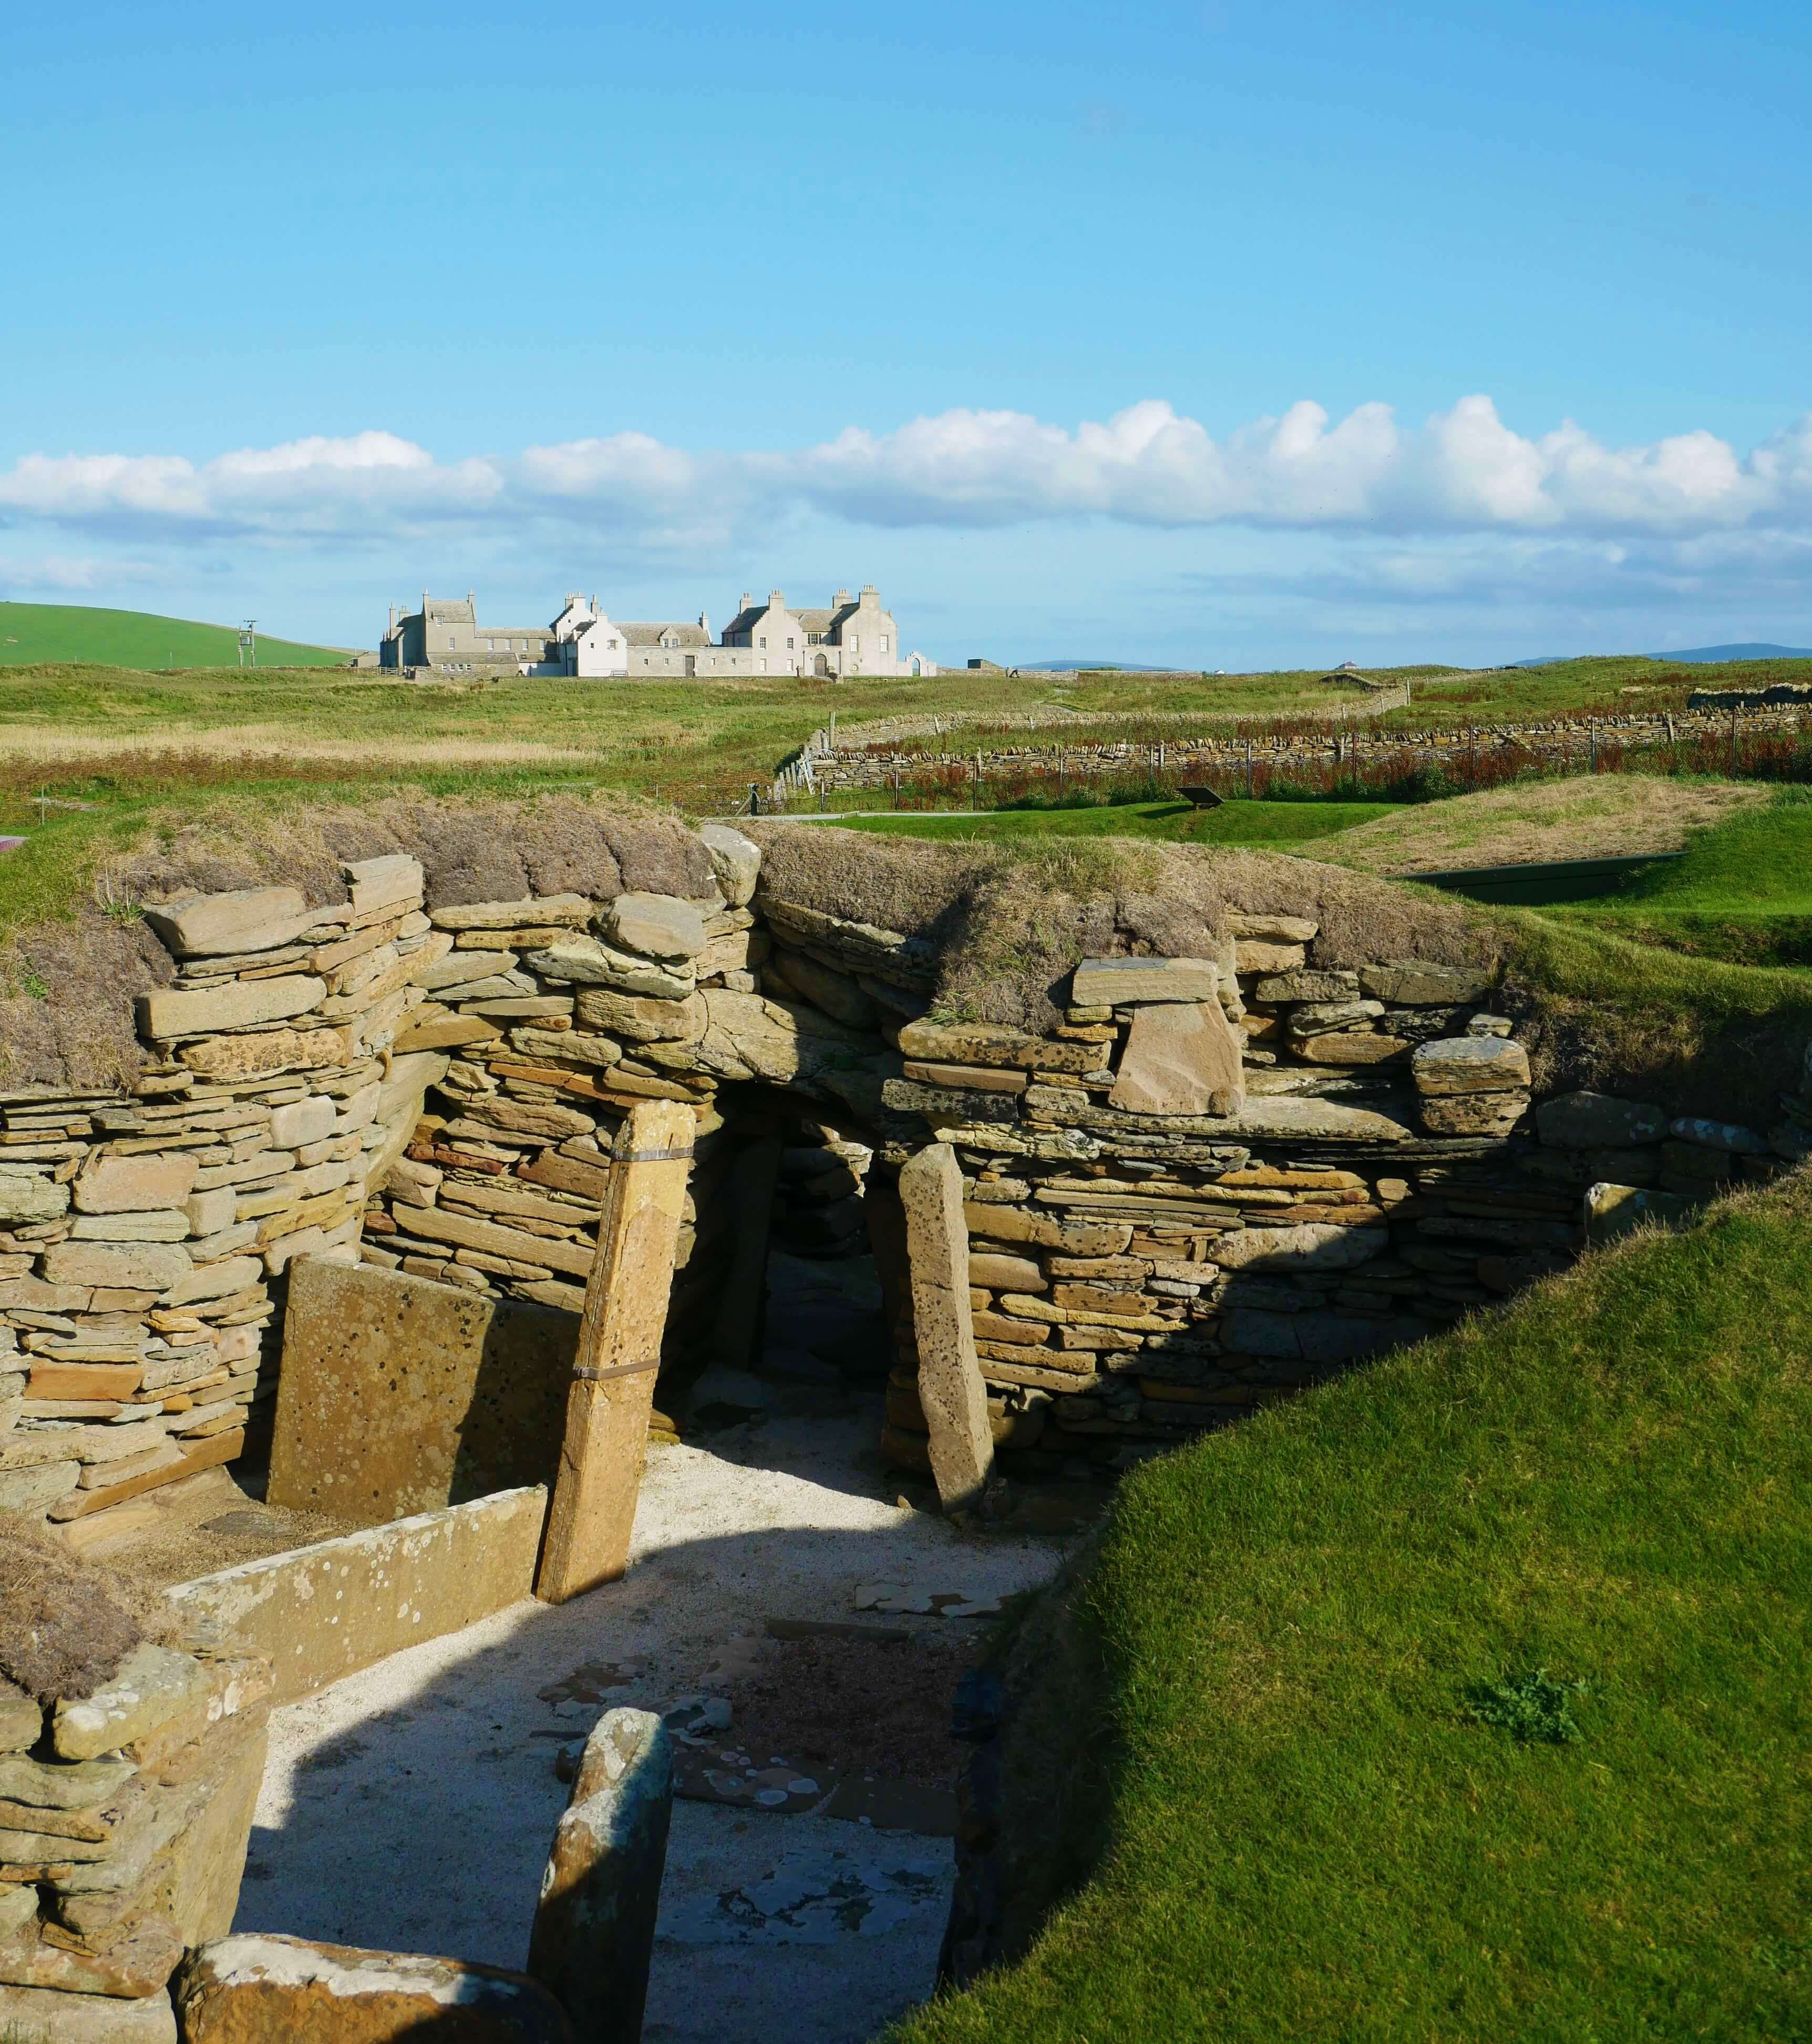 Skara Brae and Skaill House, Bay of Skaill, Orkney Islands, Scotland, UK